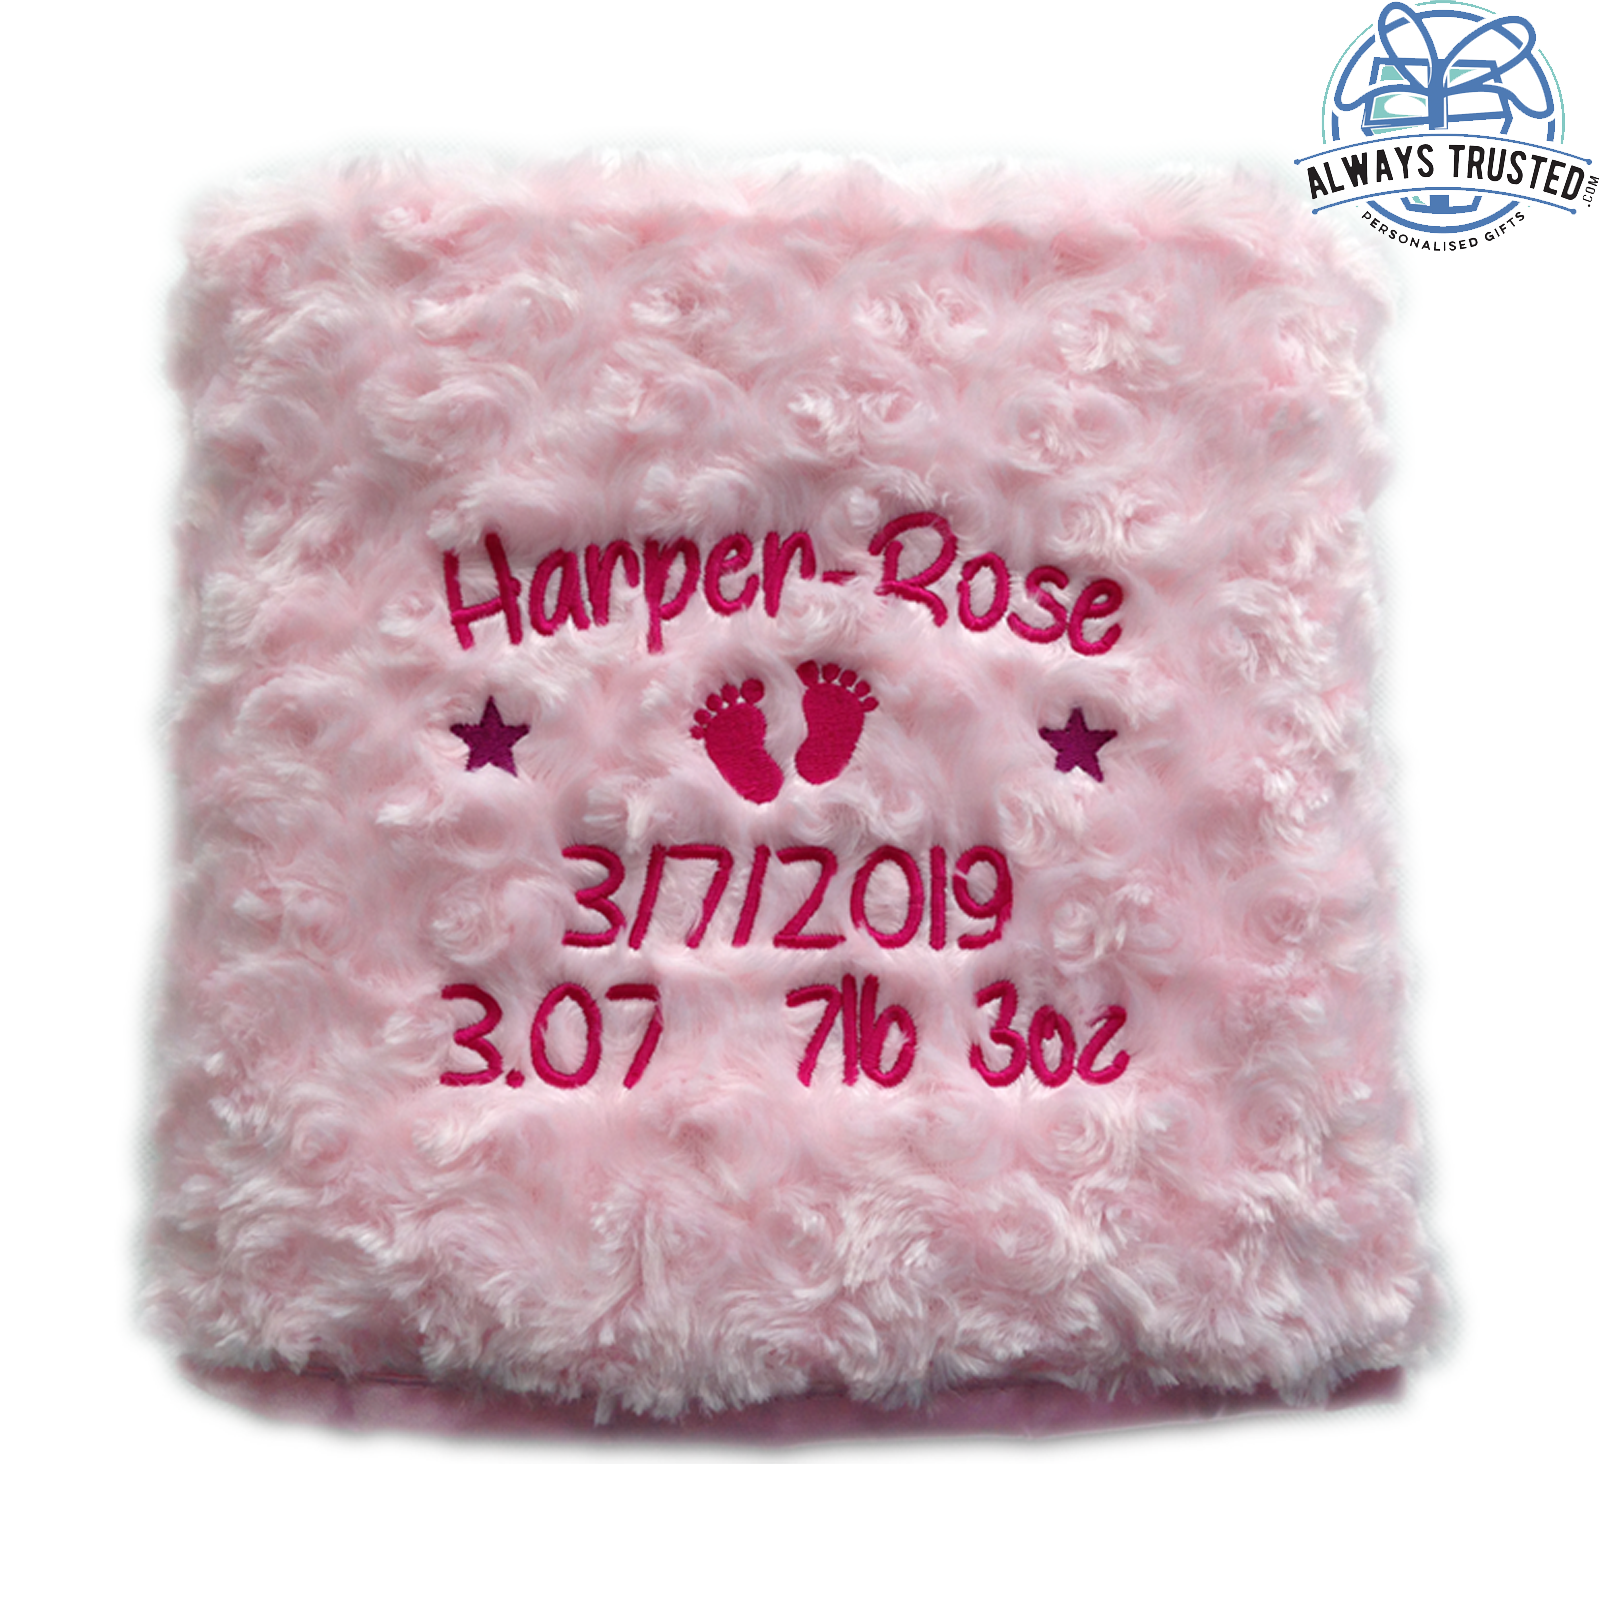 Personalised Baby Blanket Embroidered Soft Fluffy Gift 2